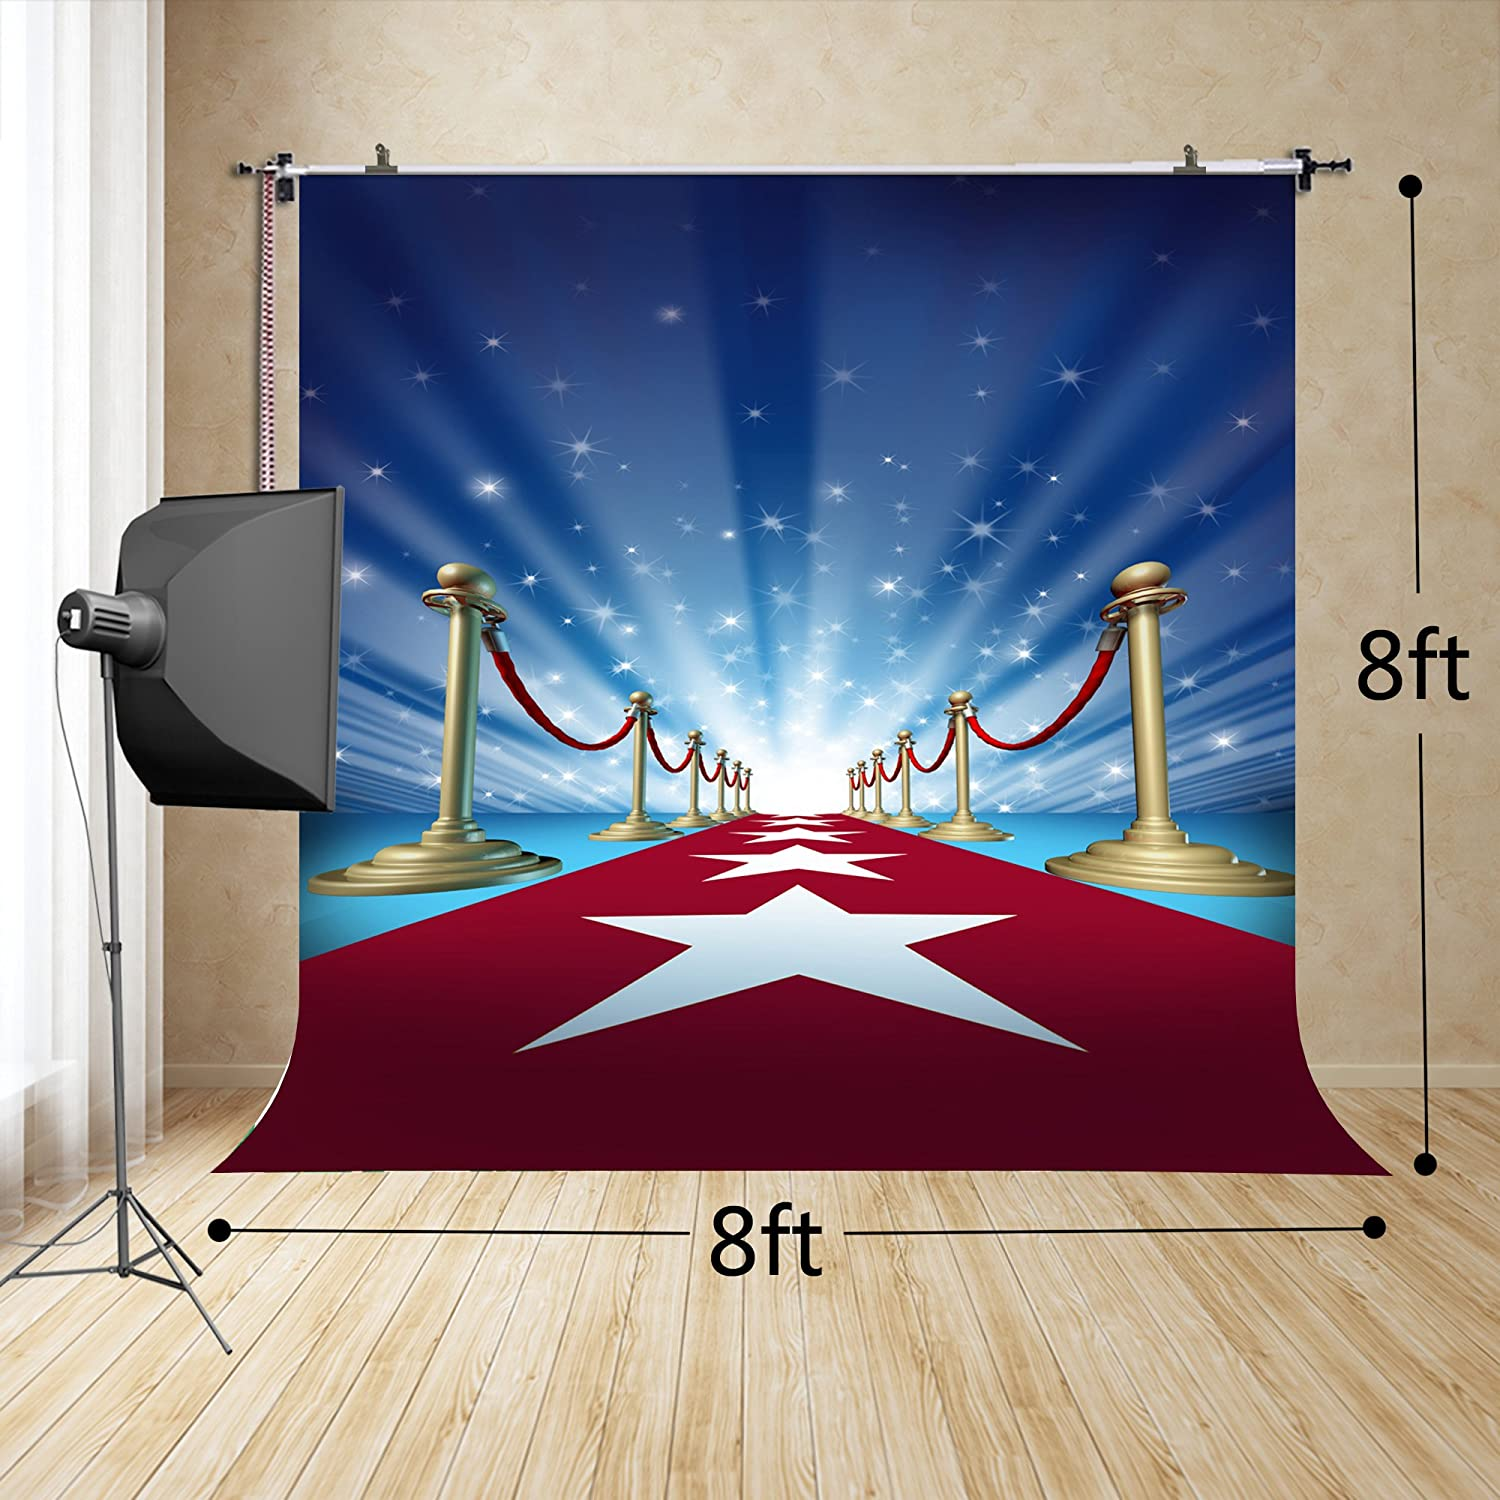 8x12 FT Industrial Vinyl Photography Background Backdrops,Inside a Hangar Old Architecture Construction Urban Life Timeworn Windows Background Newborn Baby Portrait Photo Studio Photobooth Props